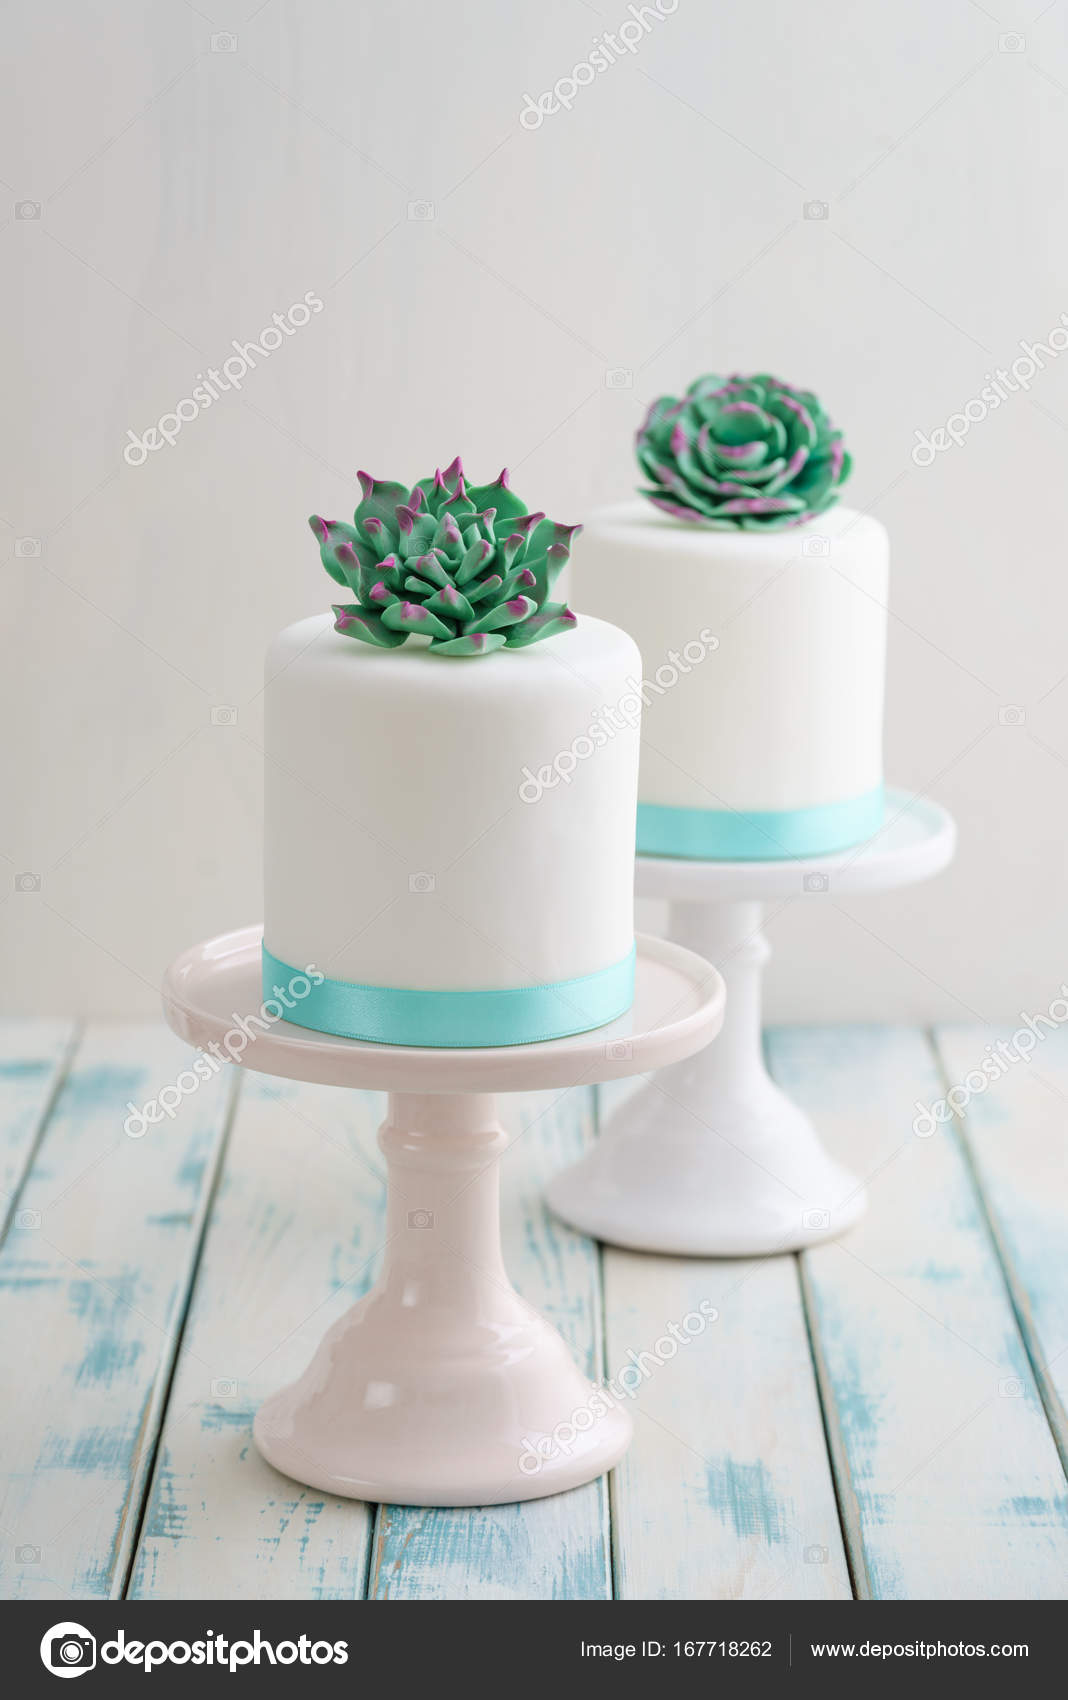 Mini succulent wedding cakes     Stock Photo      ECoelfen  167718262 Mini succulent wedding cakes     Stock Photo